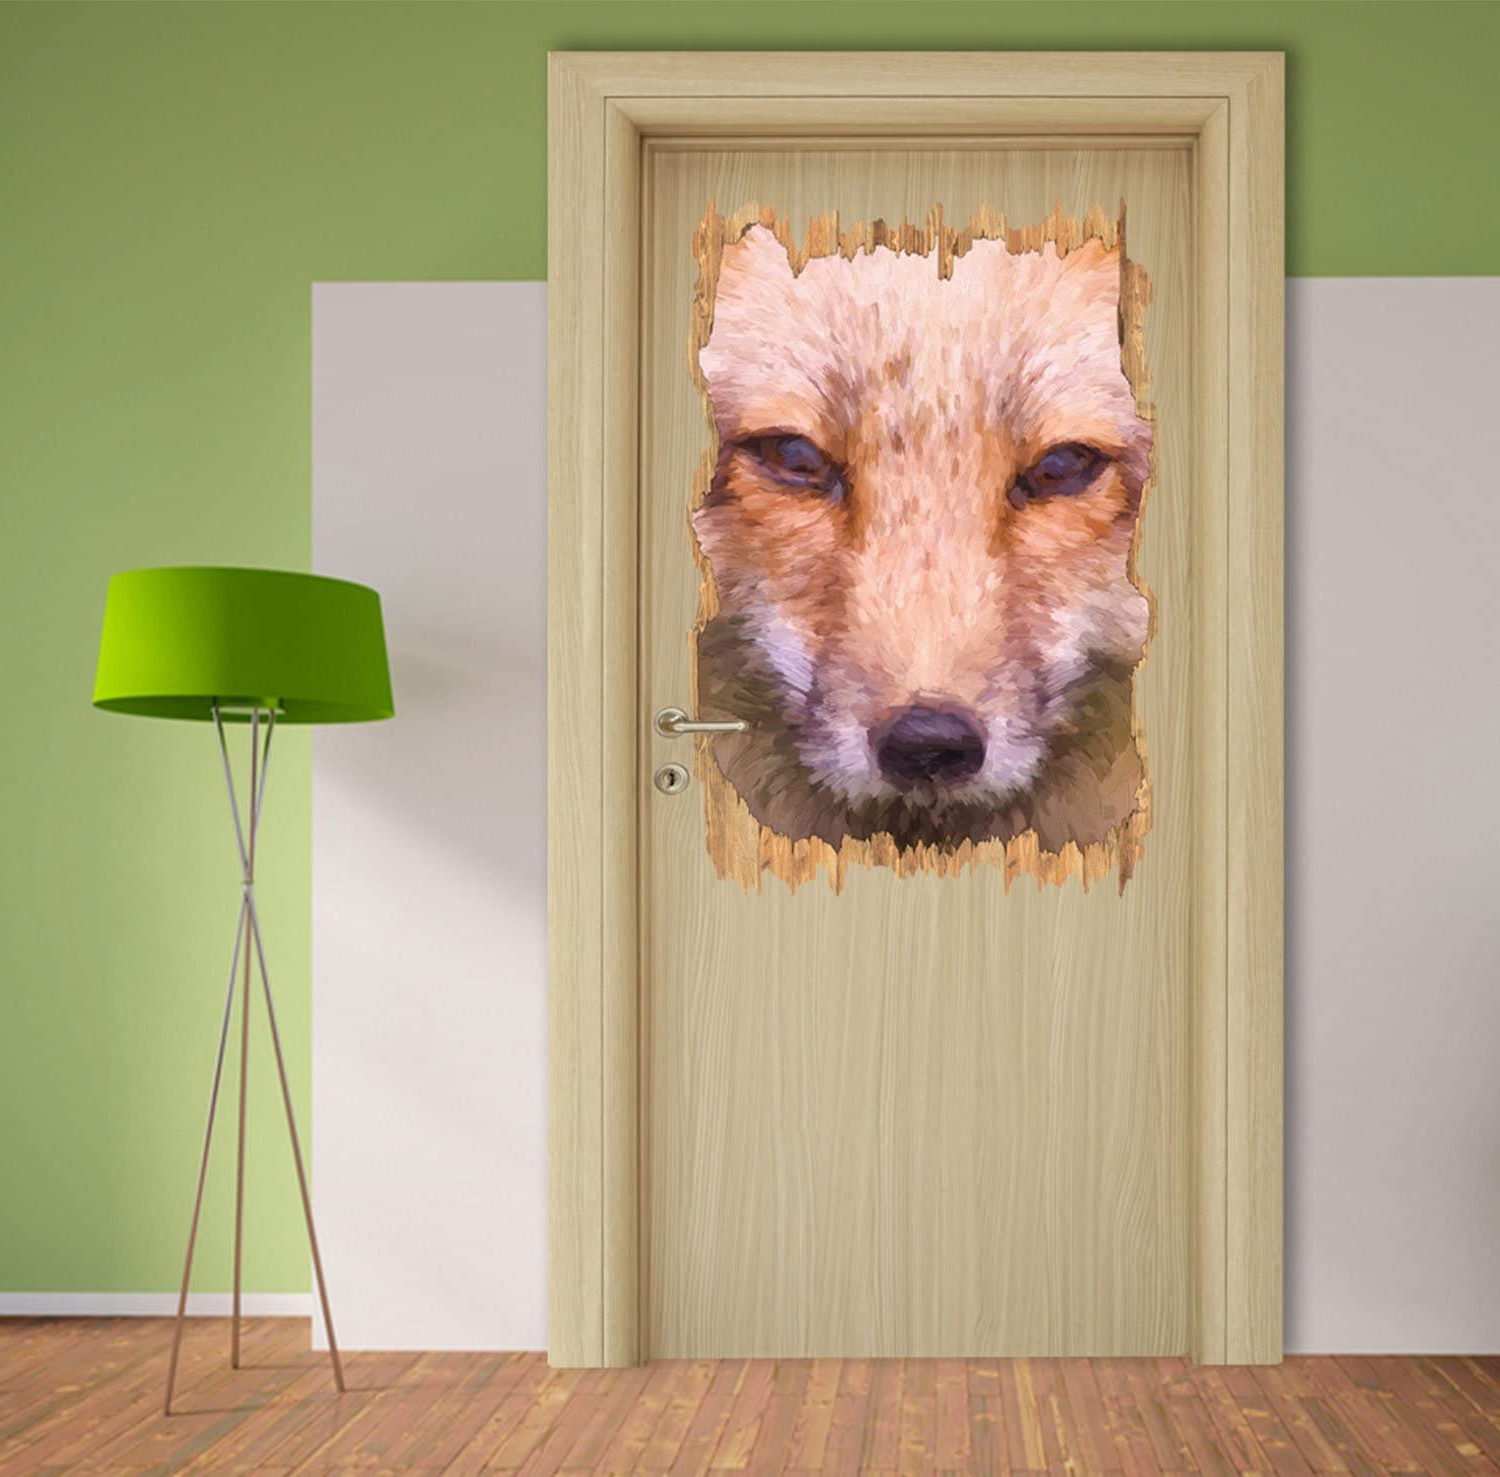 Widely Used Graceful Over The Door Wall Décor In Graceful Cunning Fox In The Wood Portrait Breakthrough In 3d (View 8 of 20)